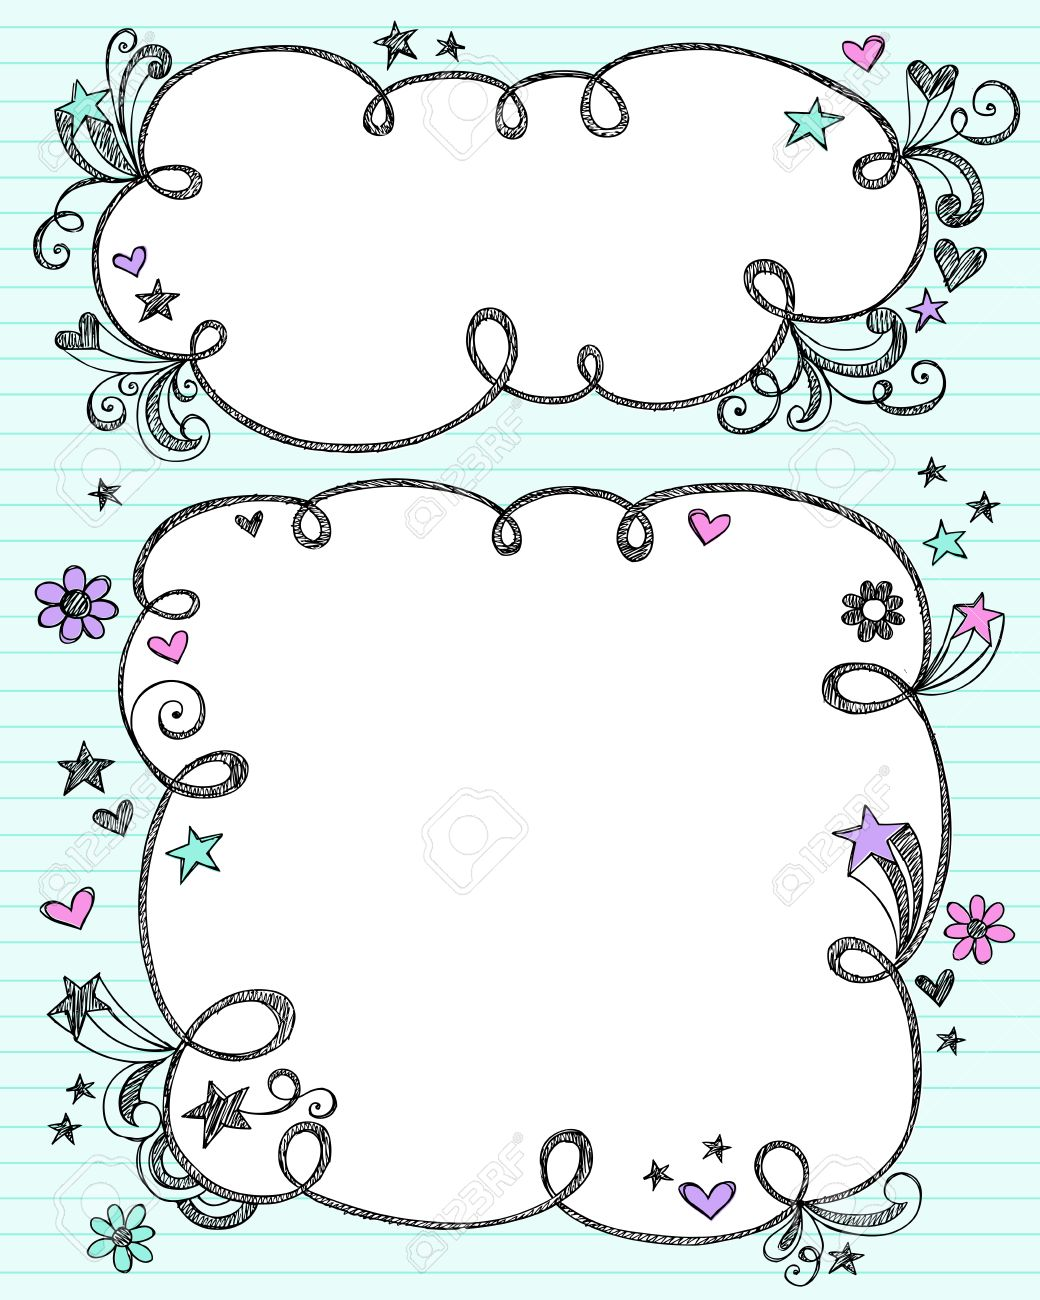 Hand-Drawn Sketchy Cloud Shaped Bubble Border Doodle Frames- Notebook Doodles on Blue Lined Paper Background- Vector Illustration Stock Vector - 8197687